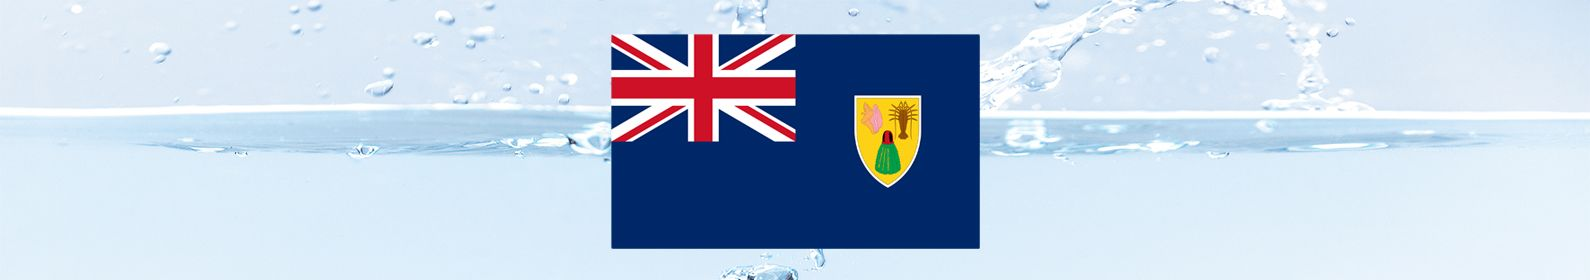 water-treatment-turks-and-caicos-islands.jpg